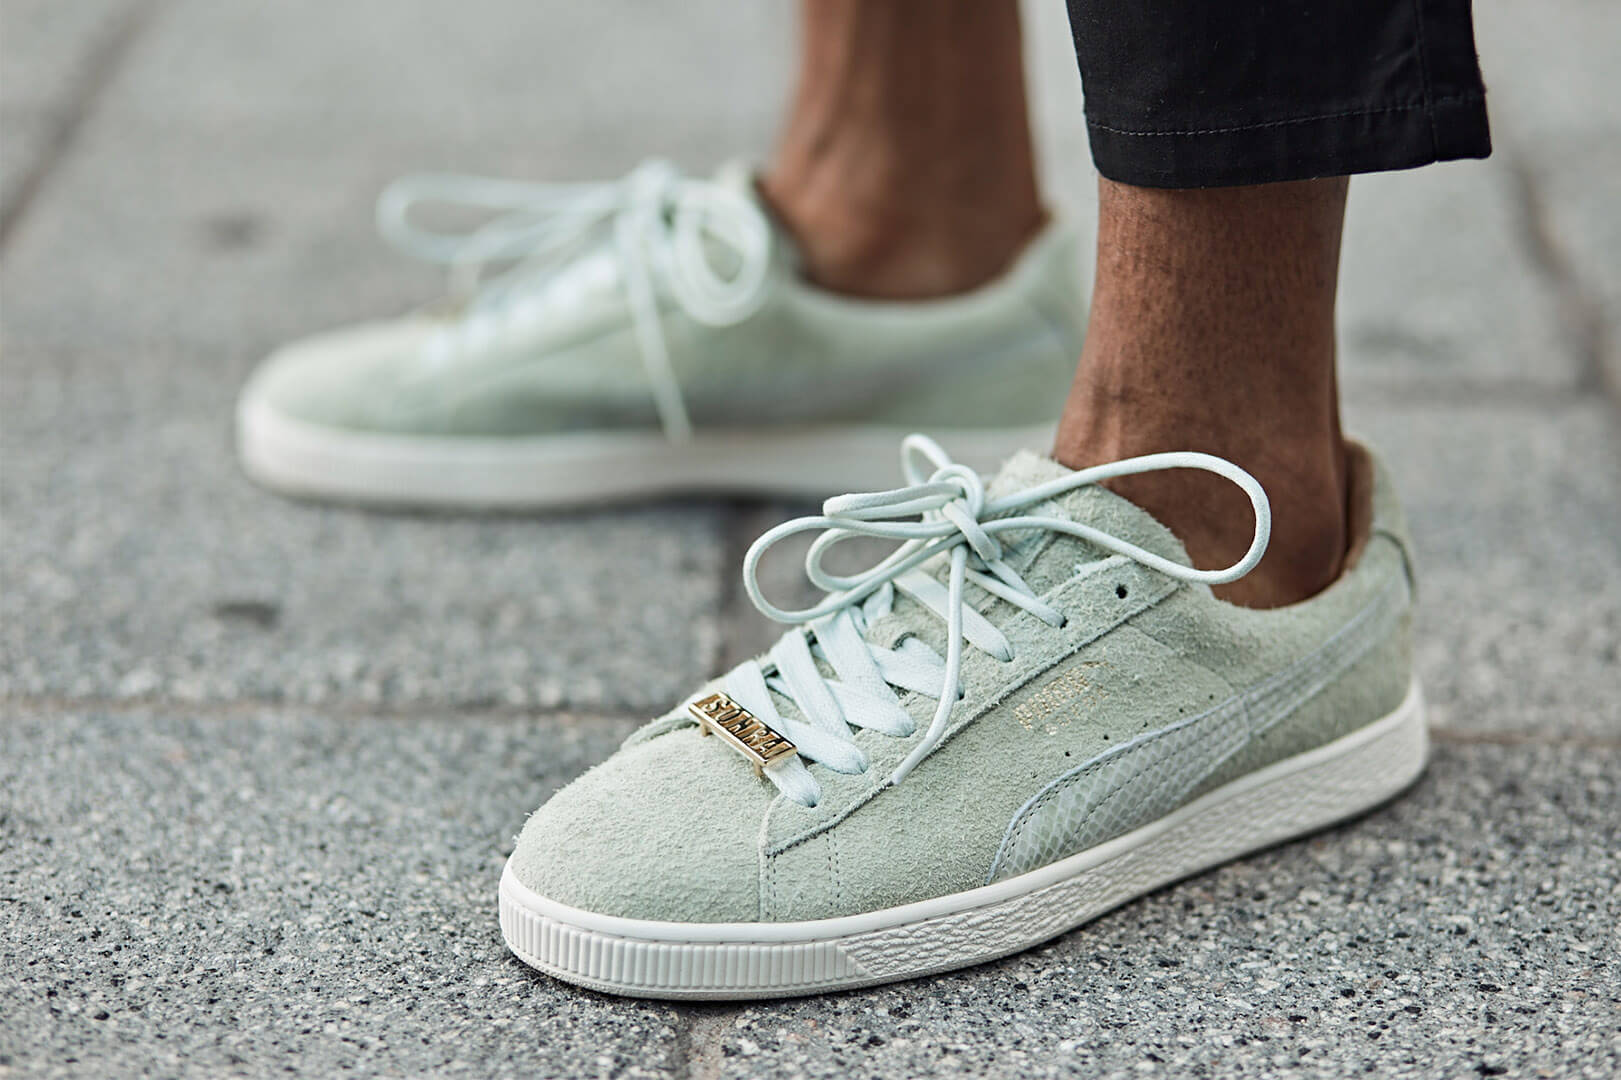 brand new f0e74 0abb7 PUMA Suede 50th Anniversary: The Year of the Suede